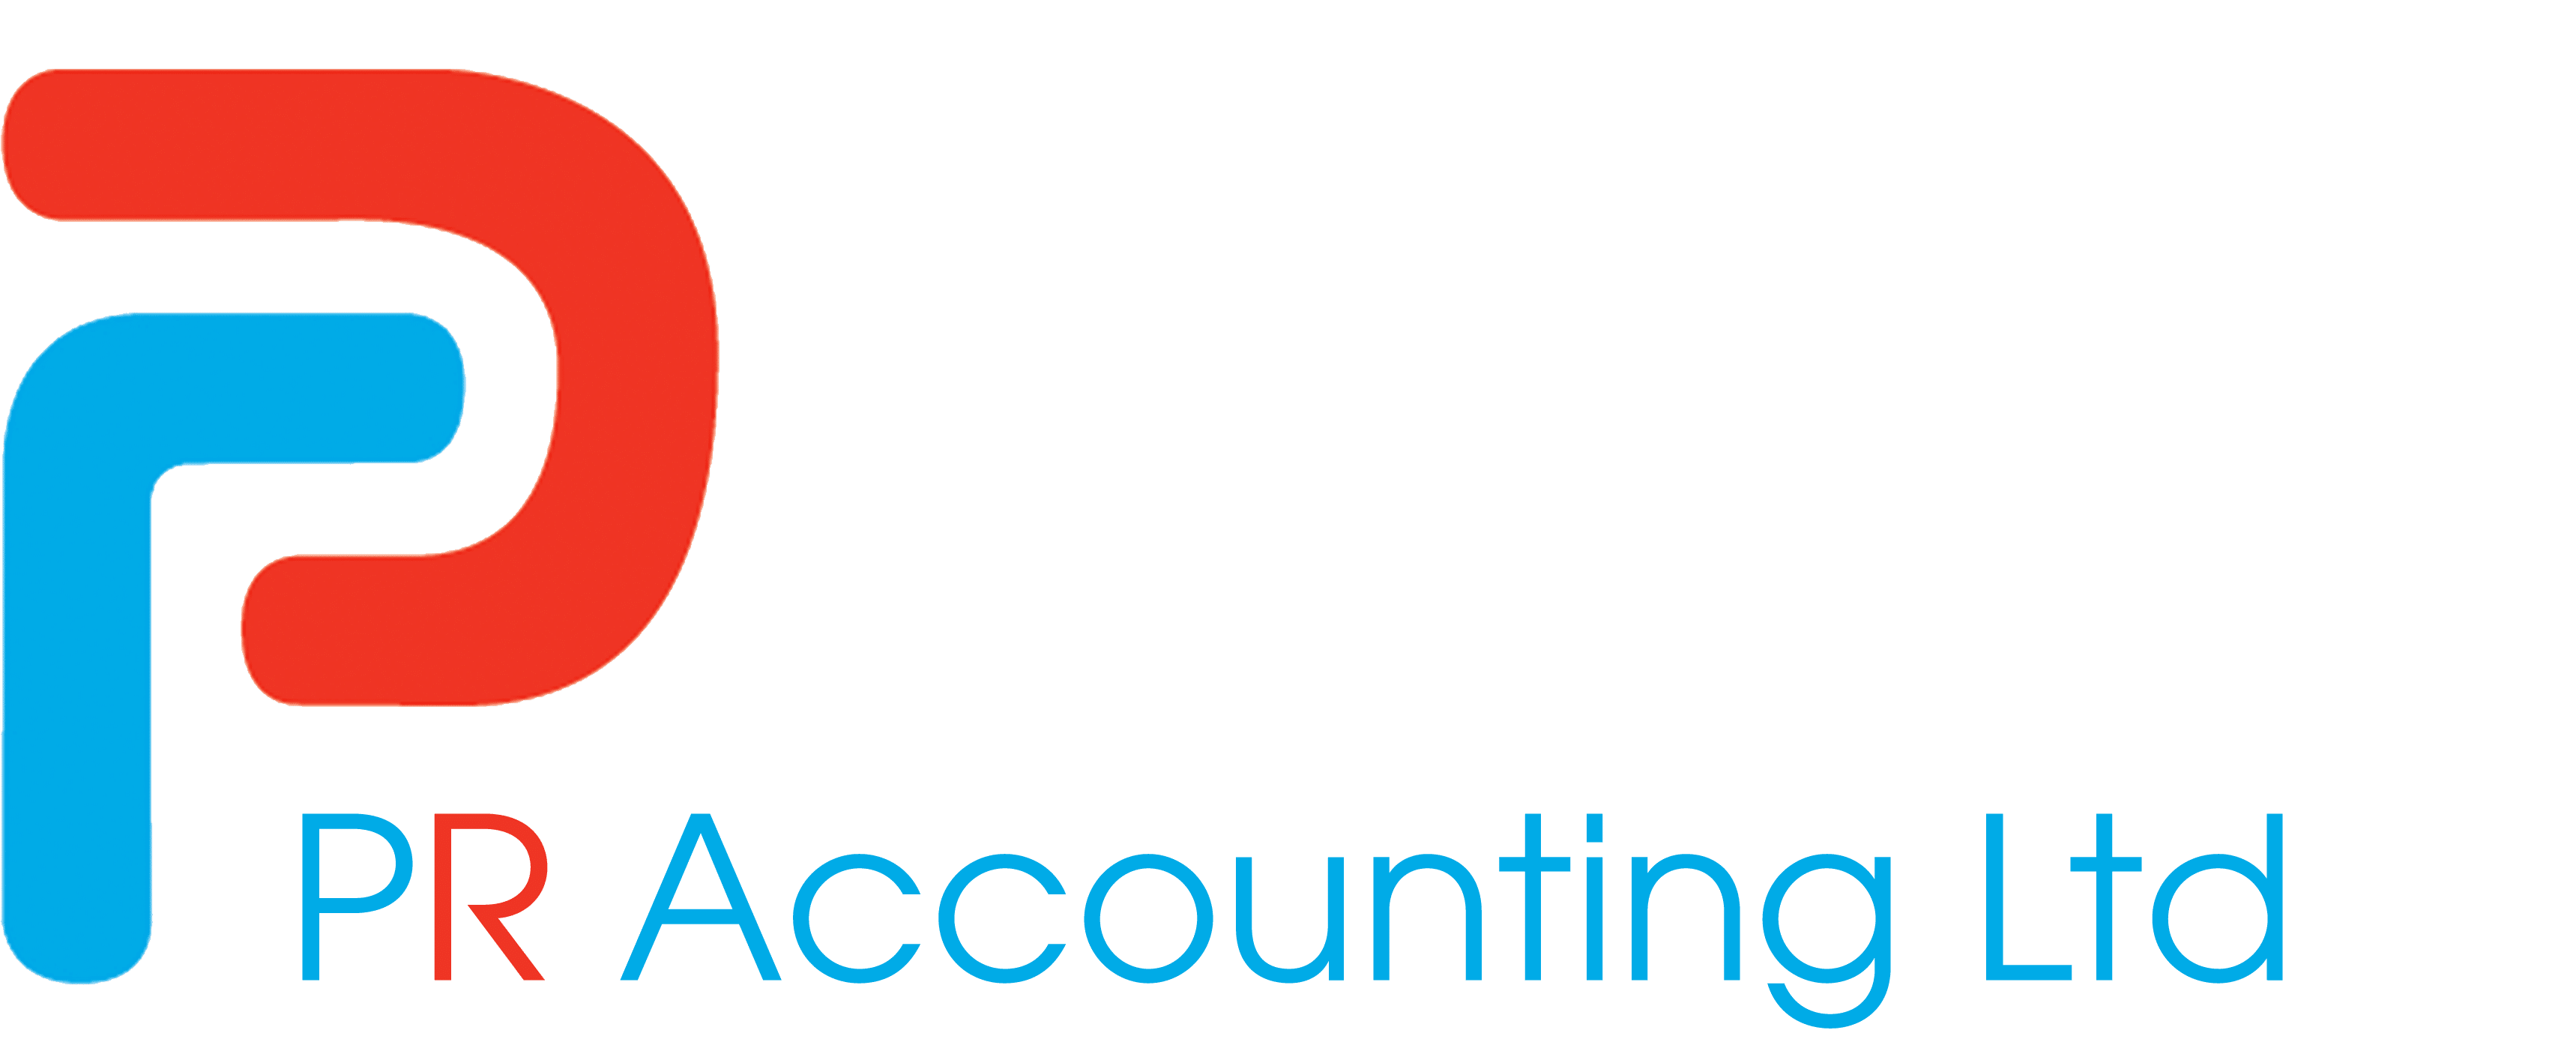 PR Accounting